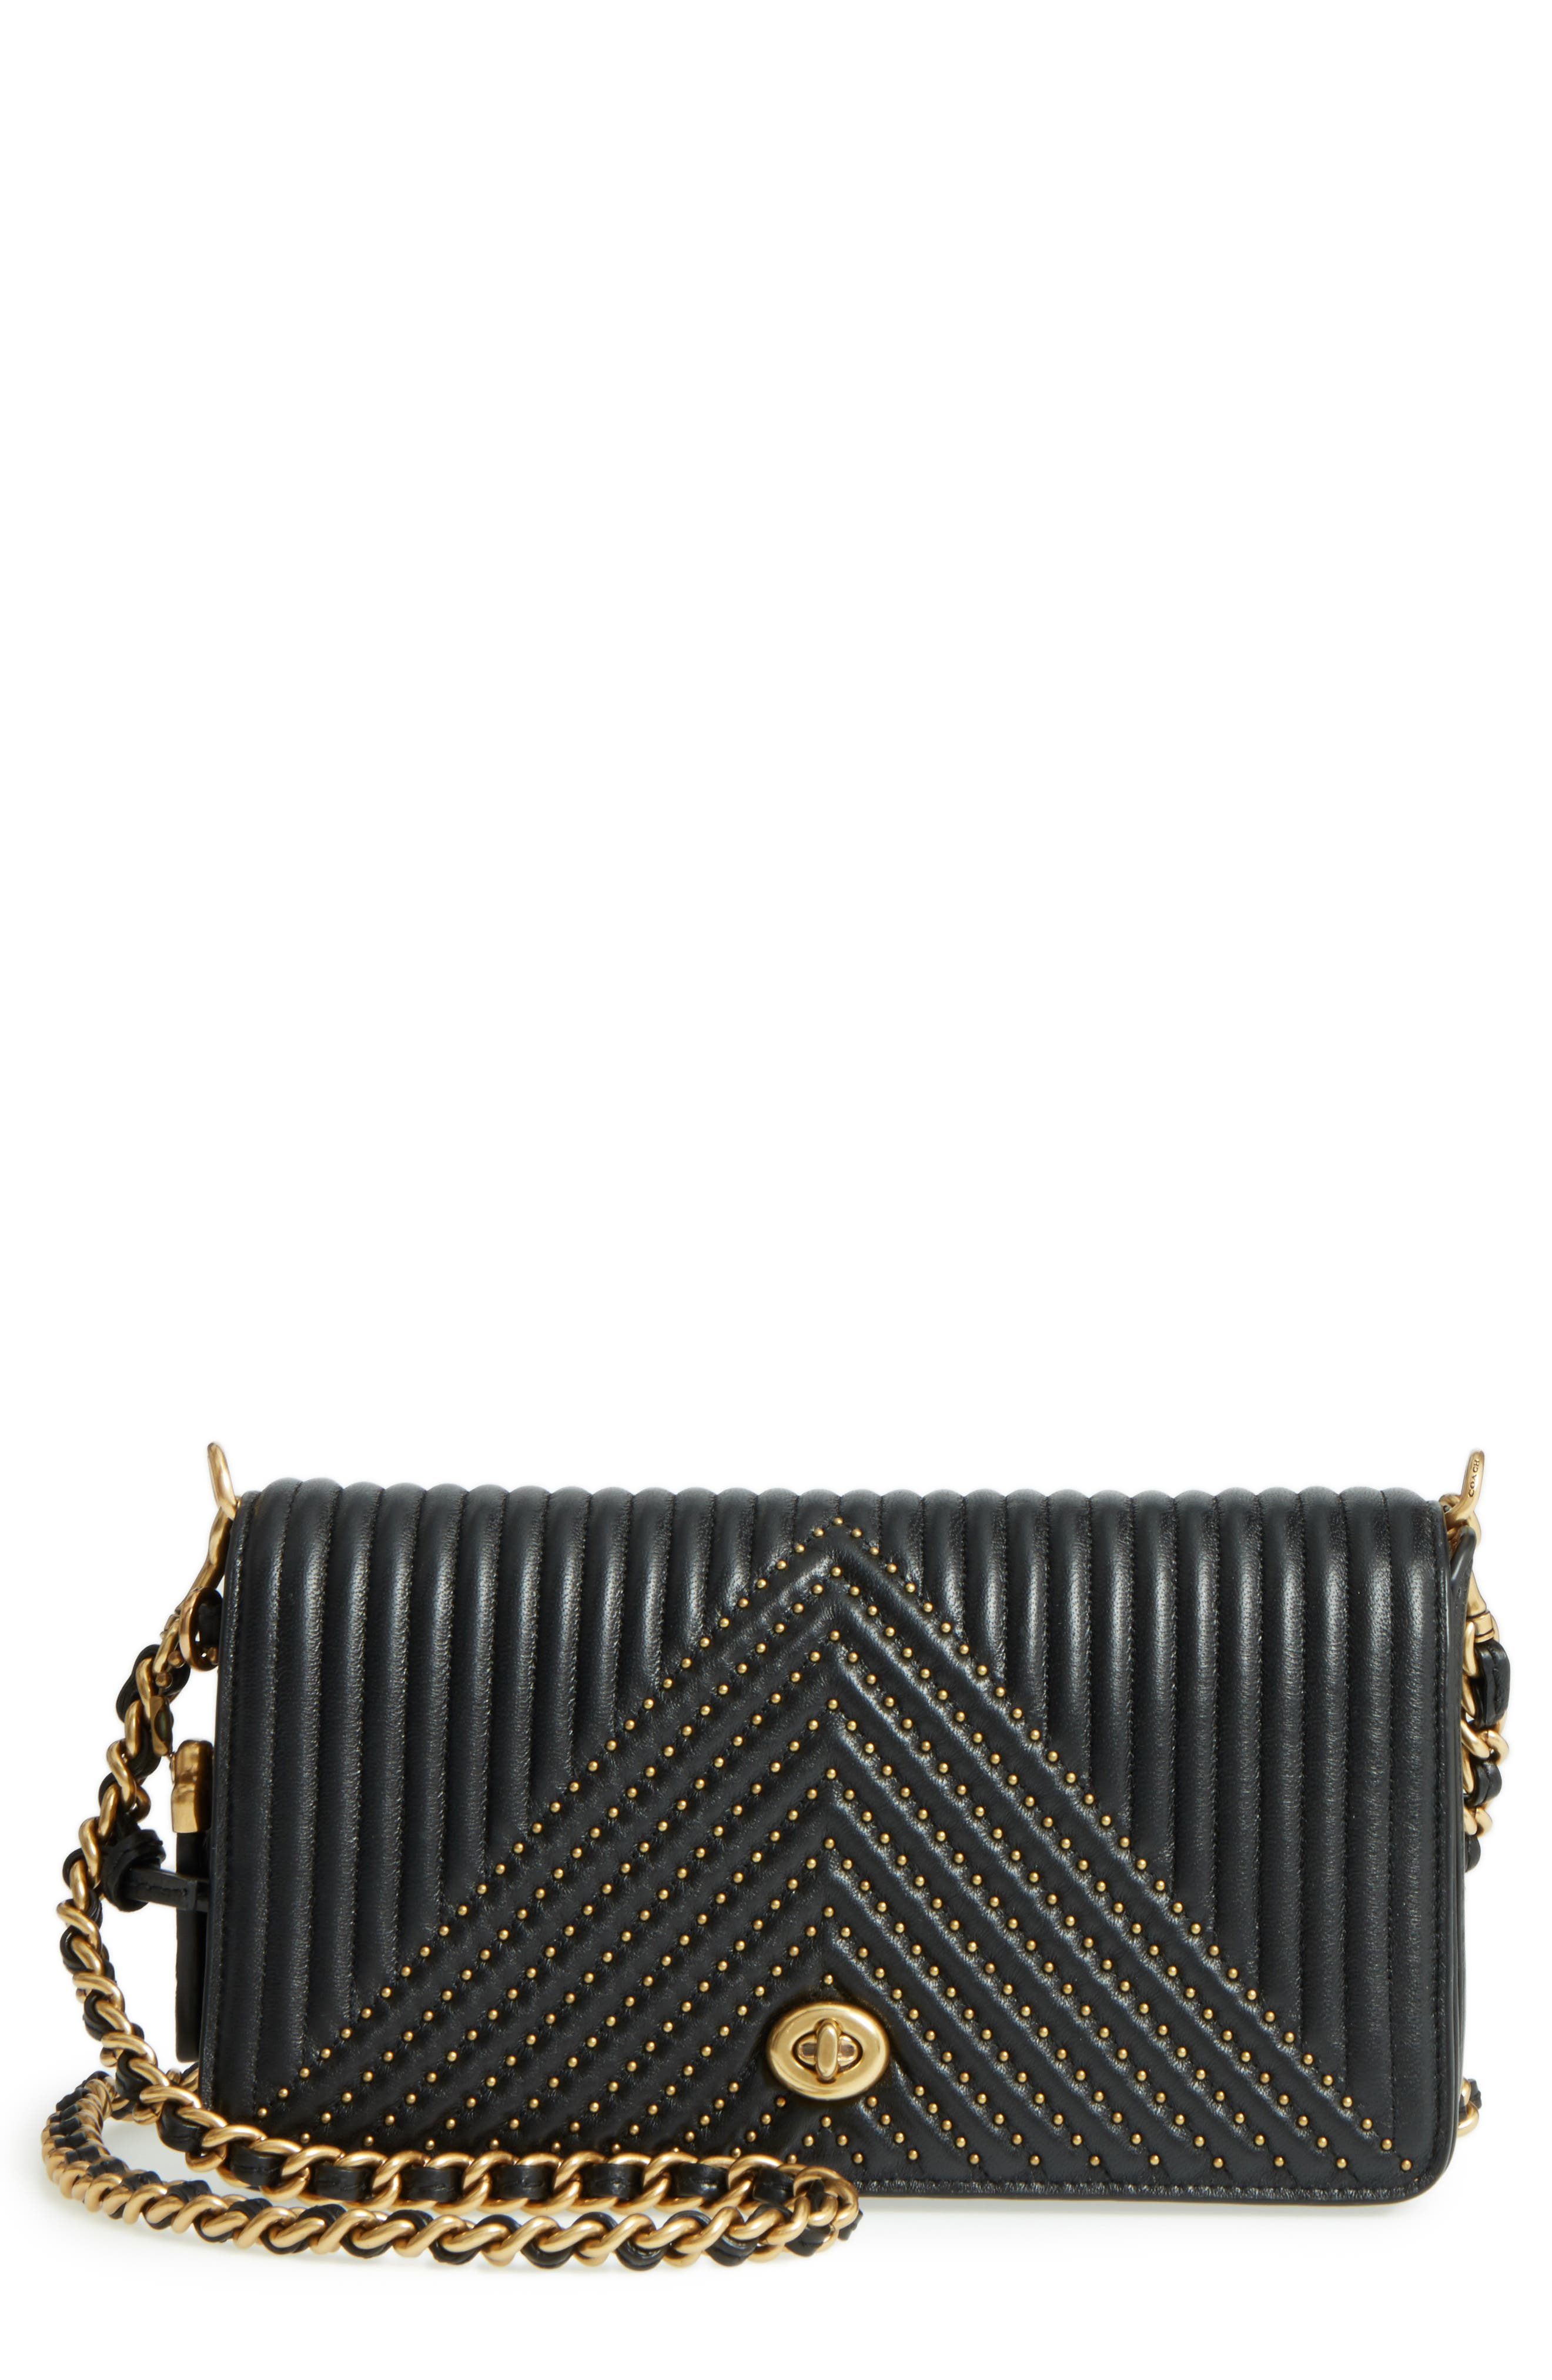 COACH 1941 Rivet Dinky Quilted Leather Crossbody Bag